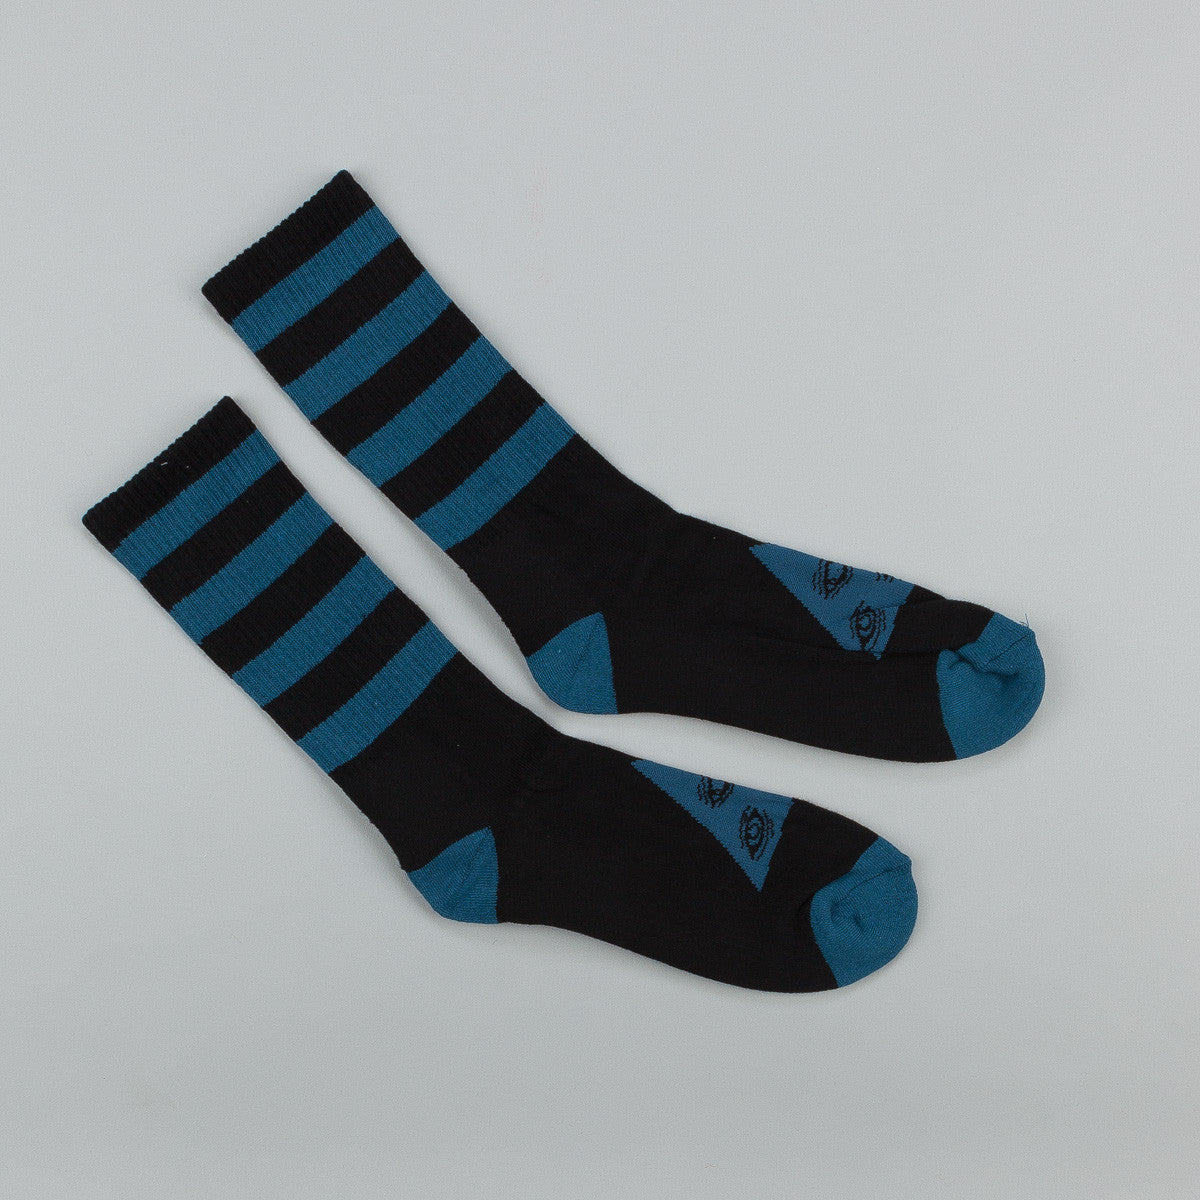 Welcome Triangle Socks - Black / Dark Teal